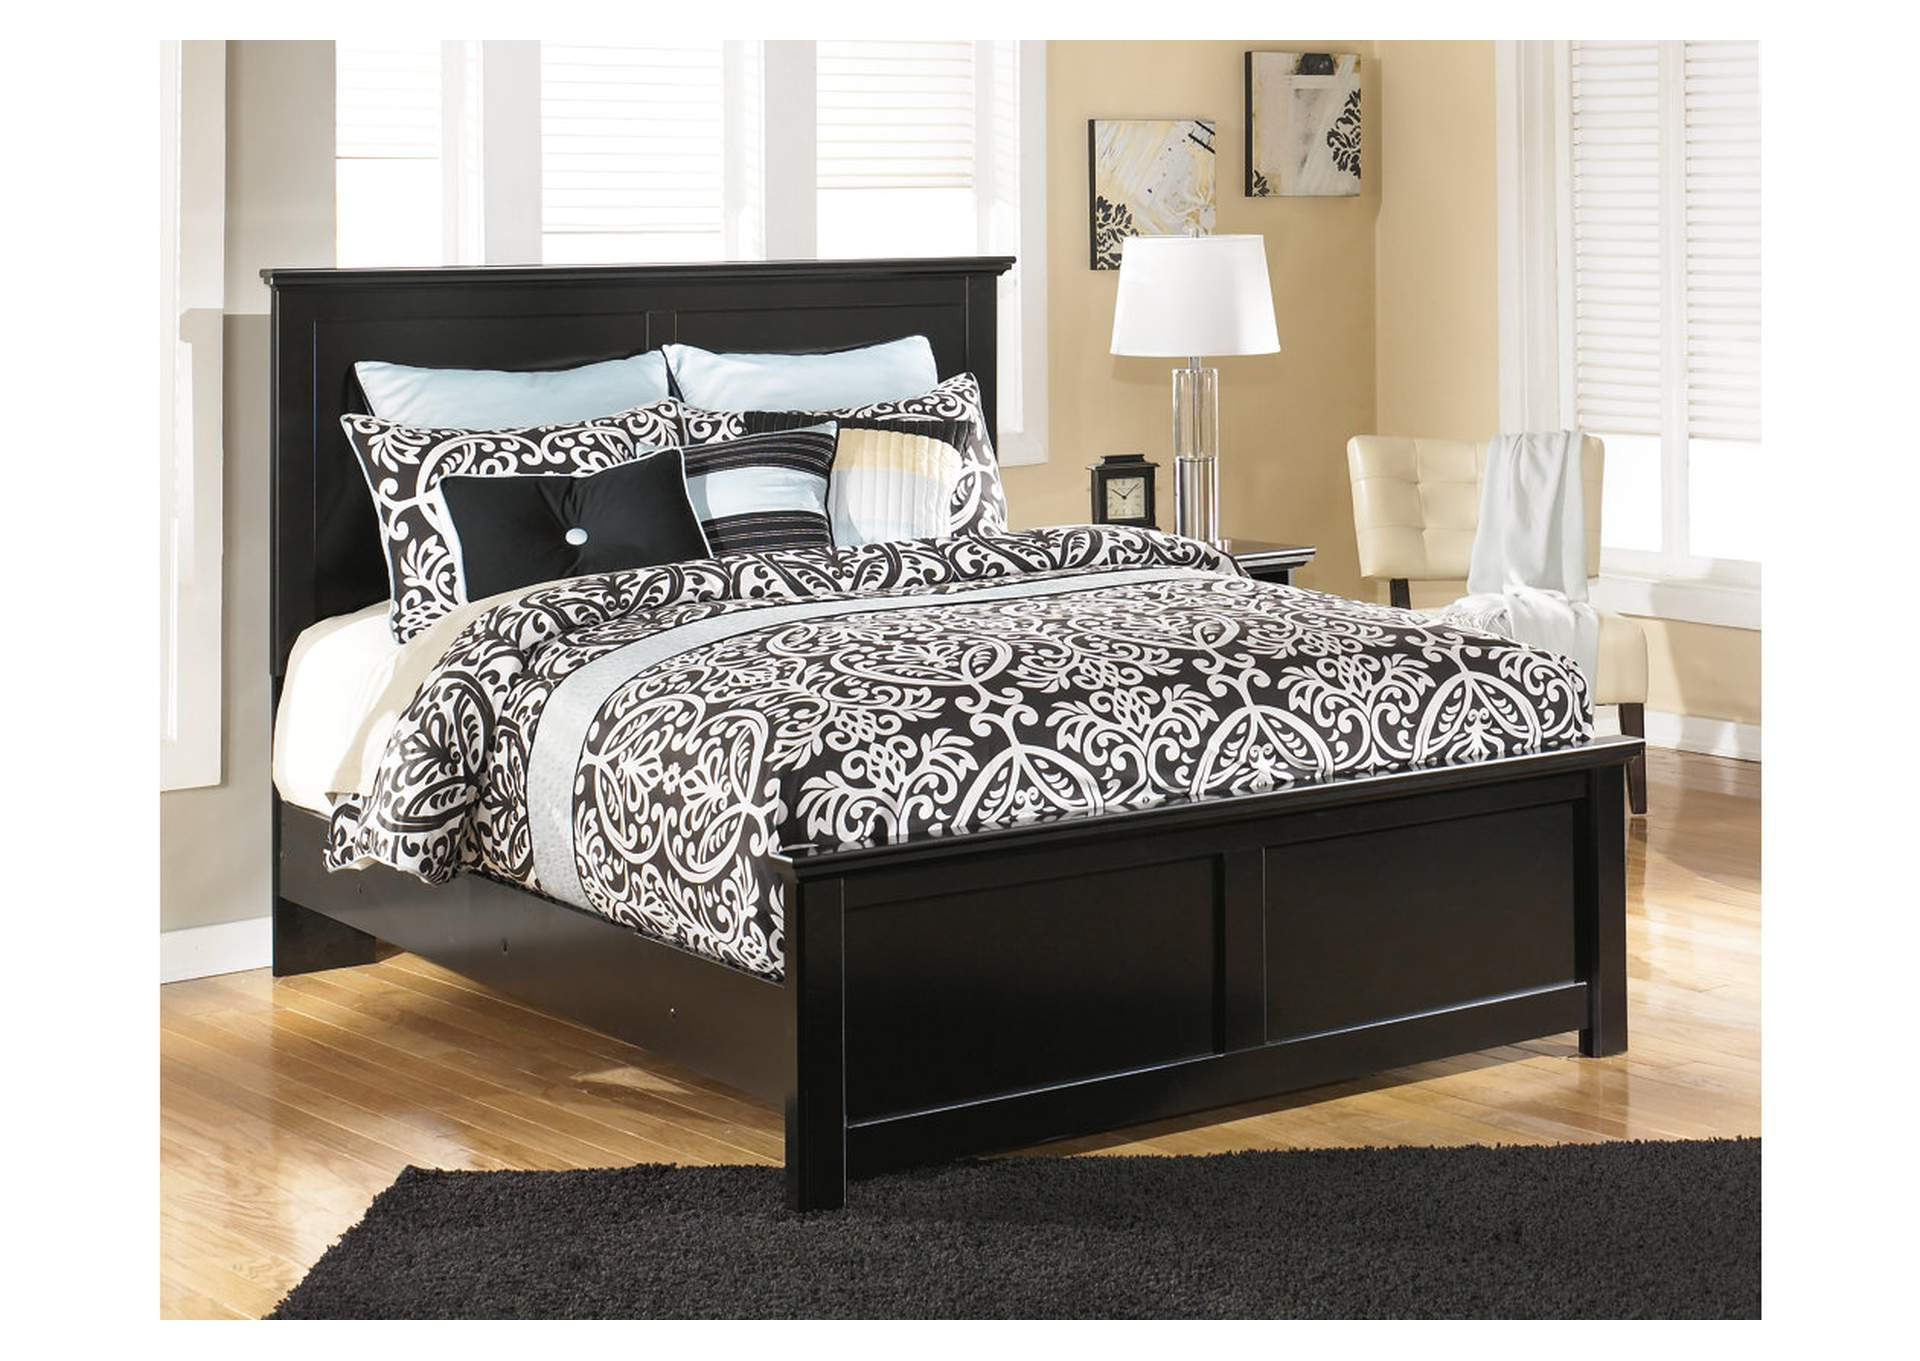 Maribel King Panel Bed,ABF Signature Design by Ashley